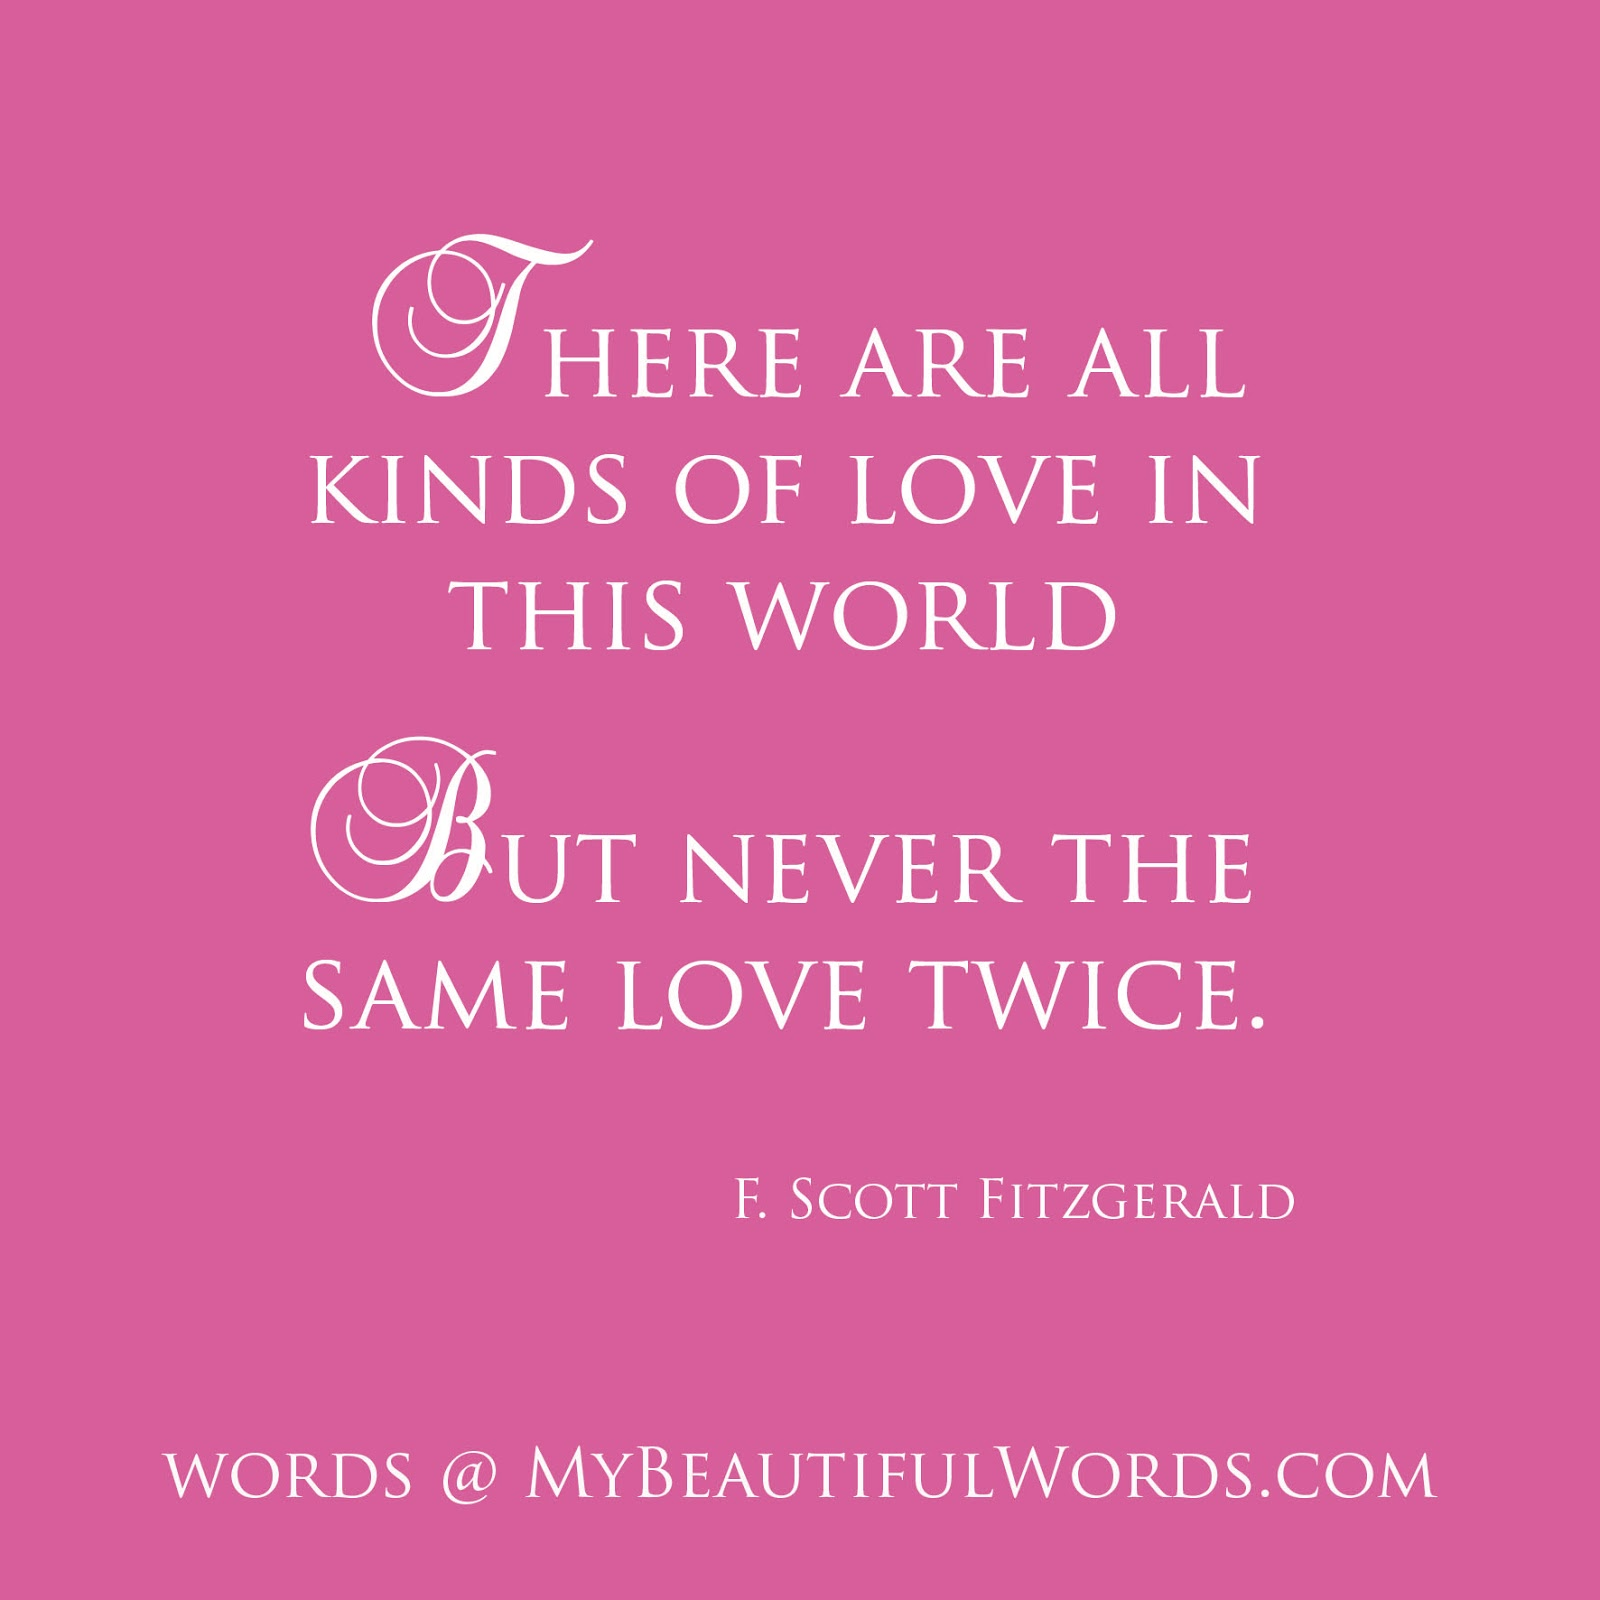 Most Beautiful Quotes On Life : The Most Beautiful Quotes On Life 2016 - Pictures & Quotes